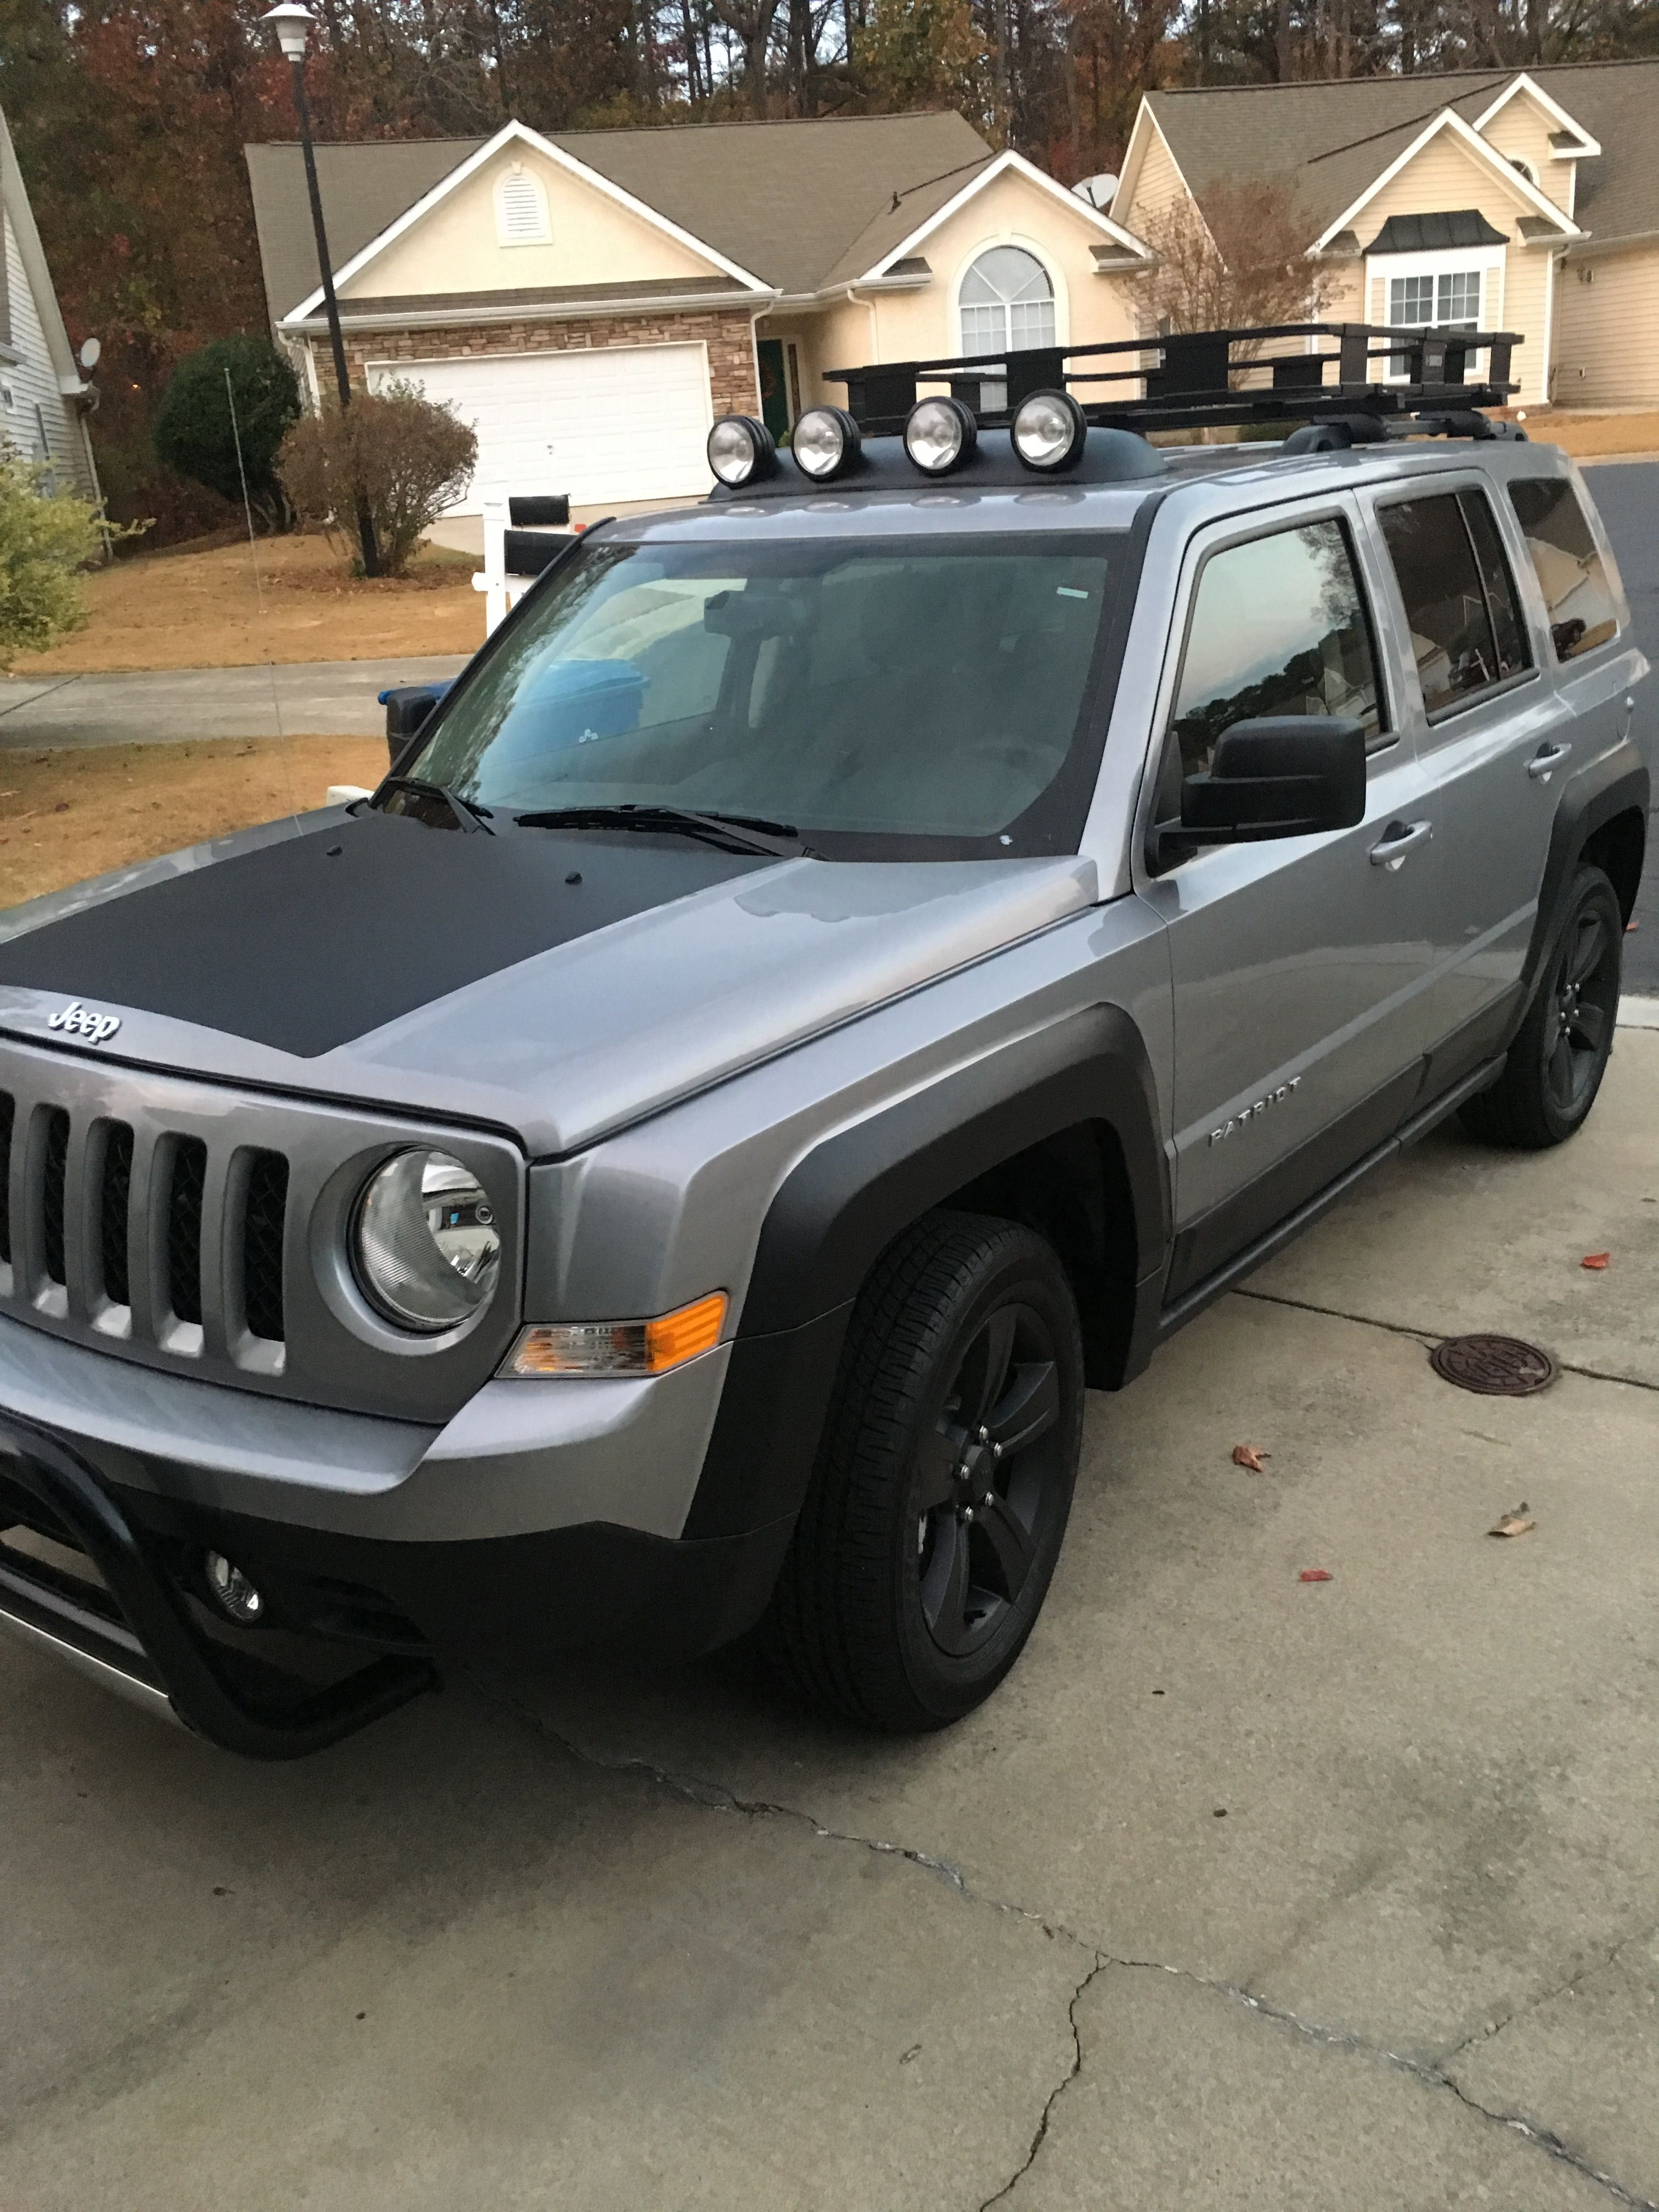 2016 jeep patriot with 3 inch pull bar hood decal painted black fender flares and wheels roof. Black Bedroom Furniture Sets. Home Design Ideas